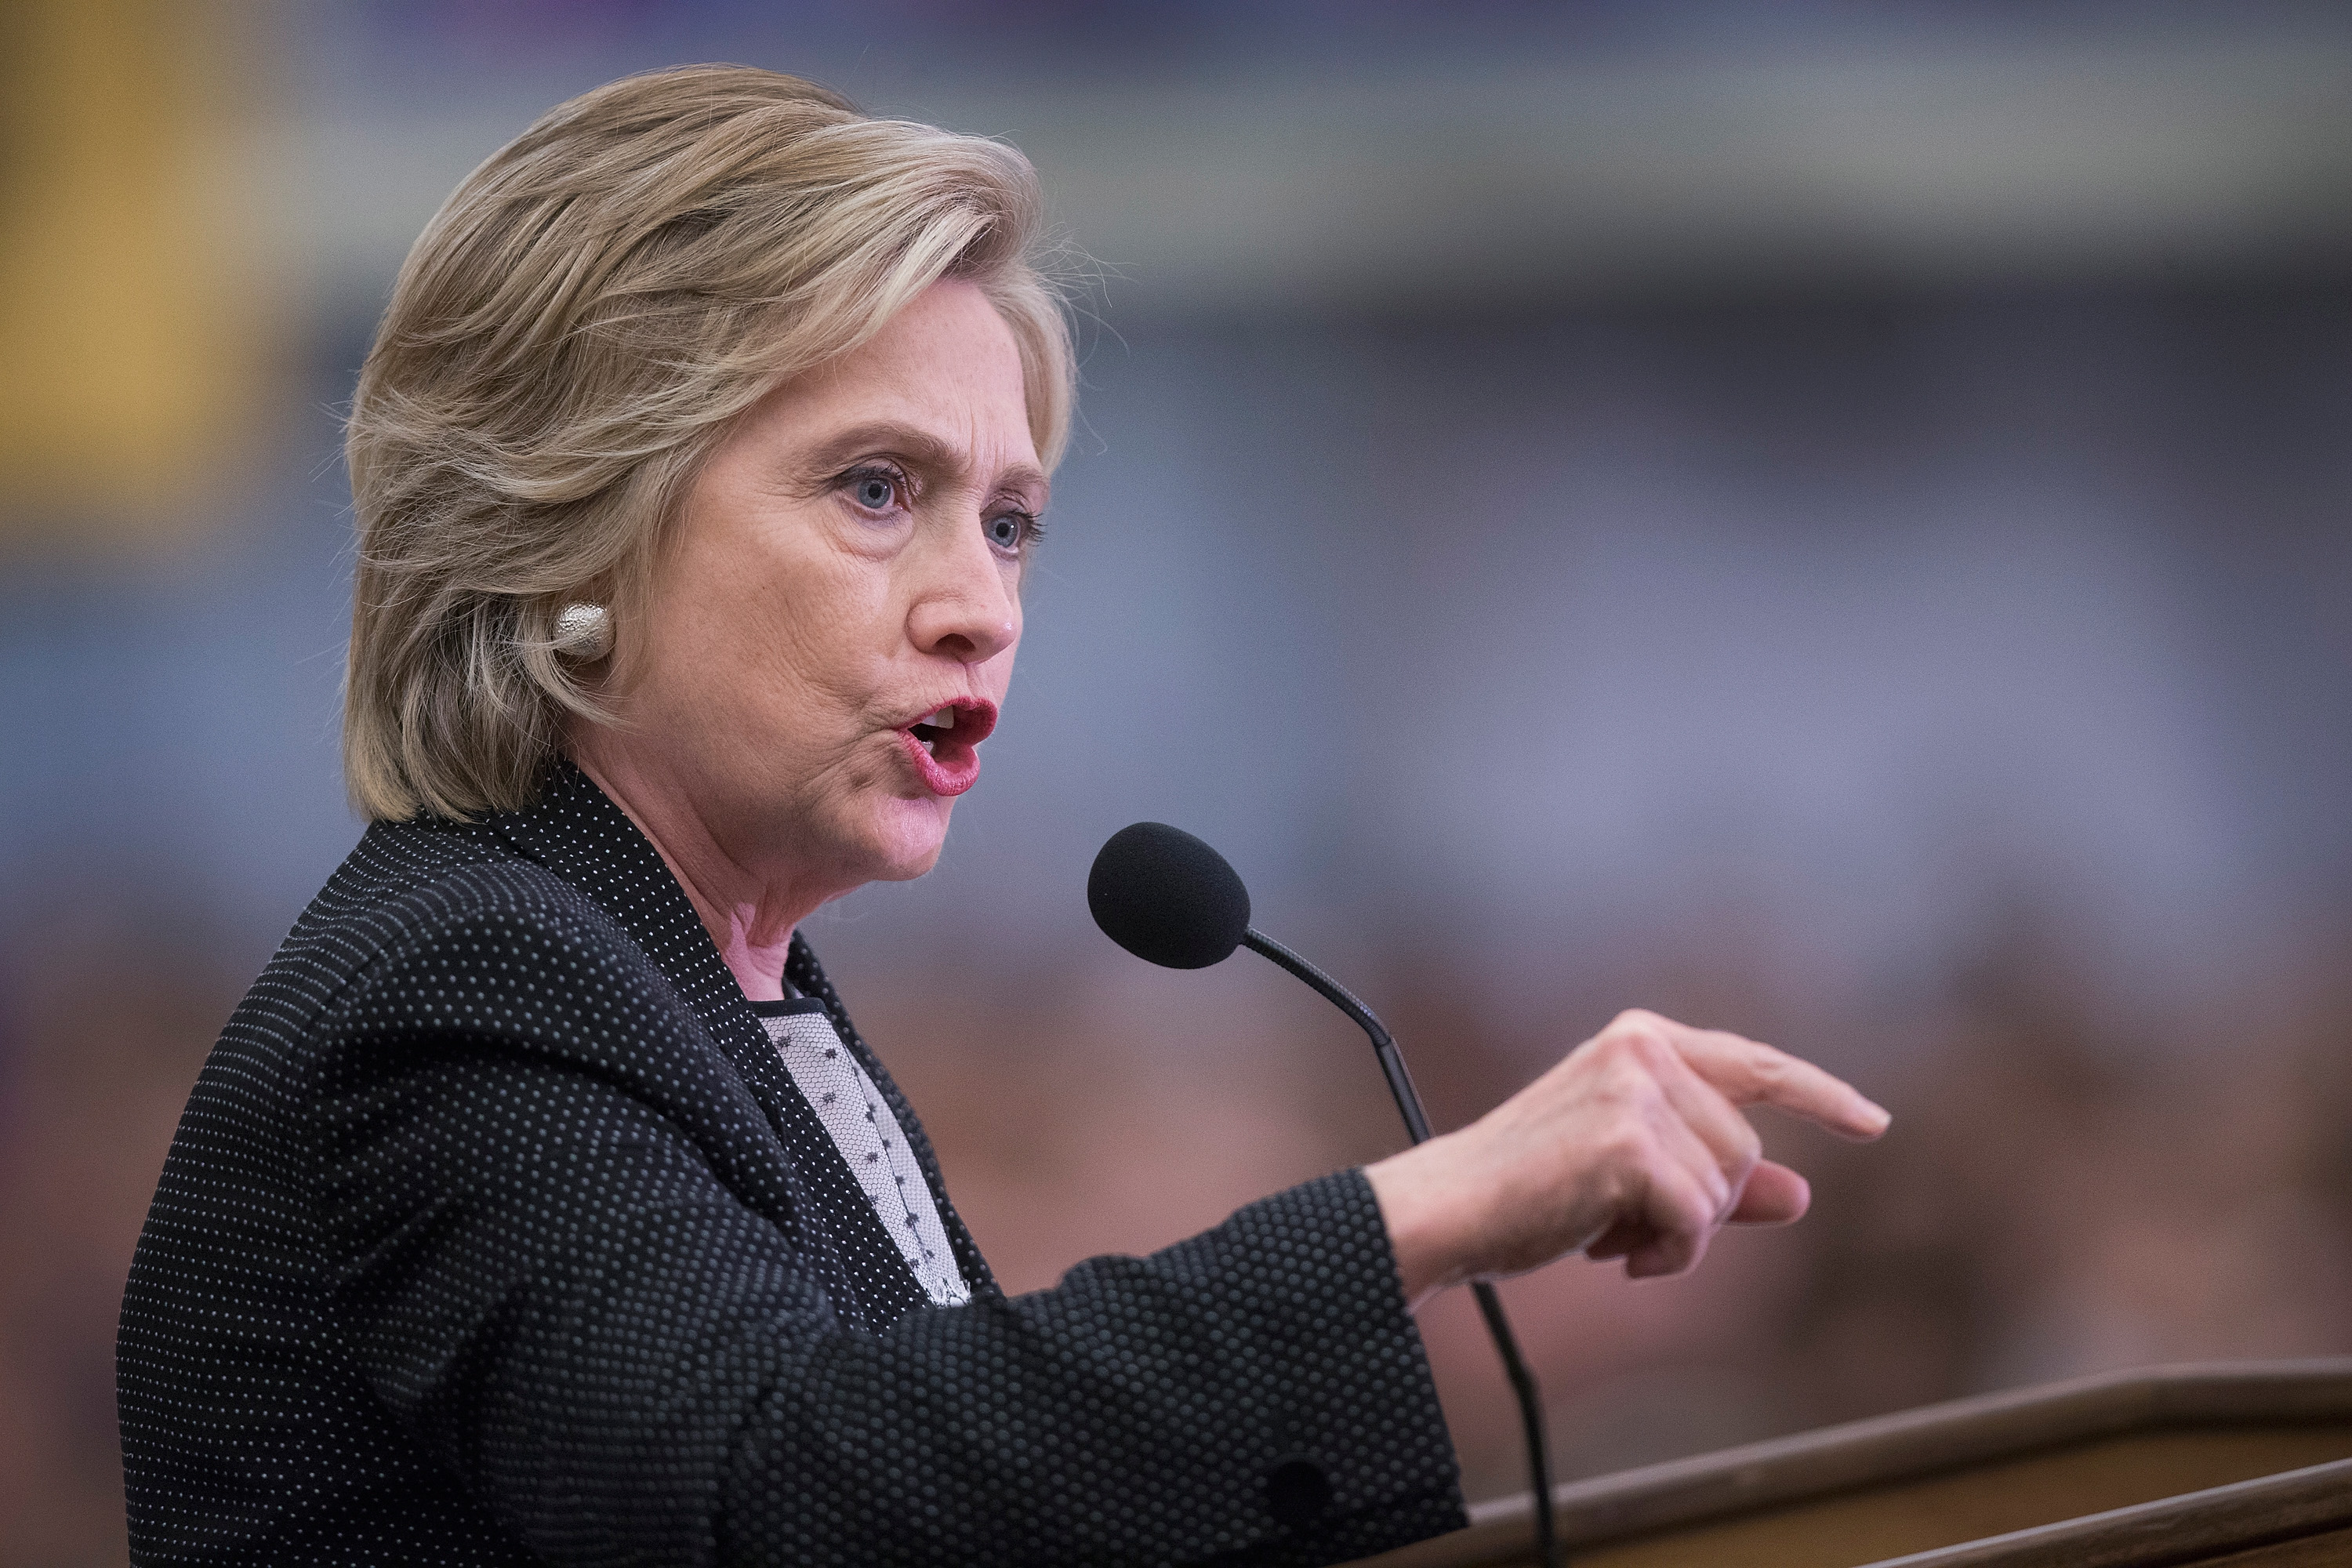 Democratic presidential candidate Hillary Clinton speaks to guests gathered for a campaign event at the University of Wisconsin-Milwaukee on Sept. 10, 2015 in Milwaukee, Wisconsin.